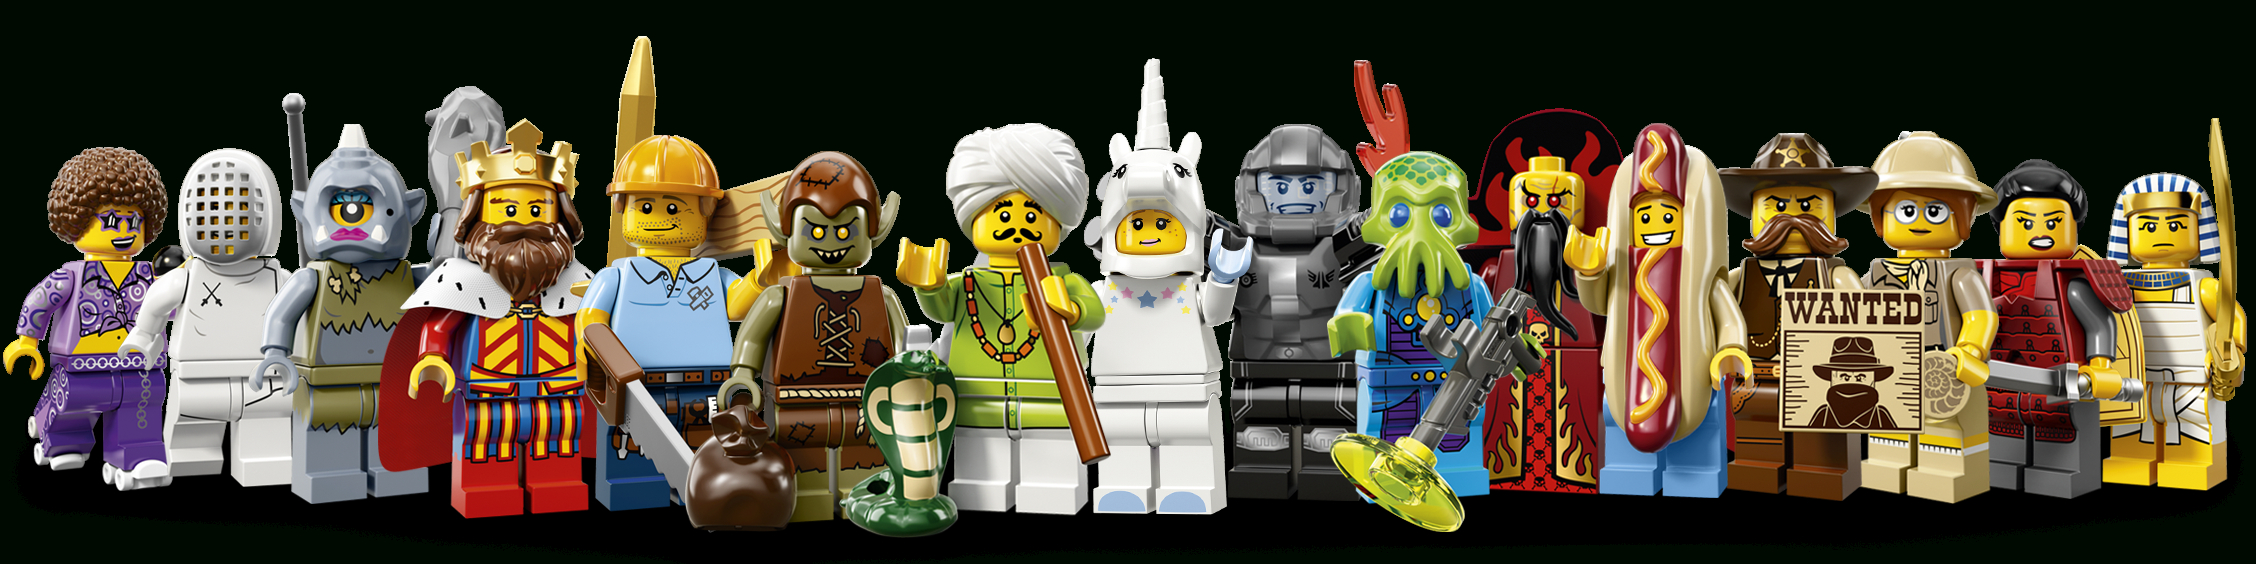 Review: Lego Minifigures Series 13 – Jay's Brick Blog regarding Jay's Brick Blog